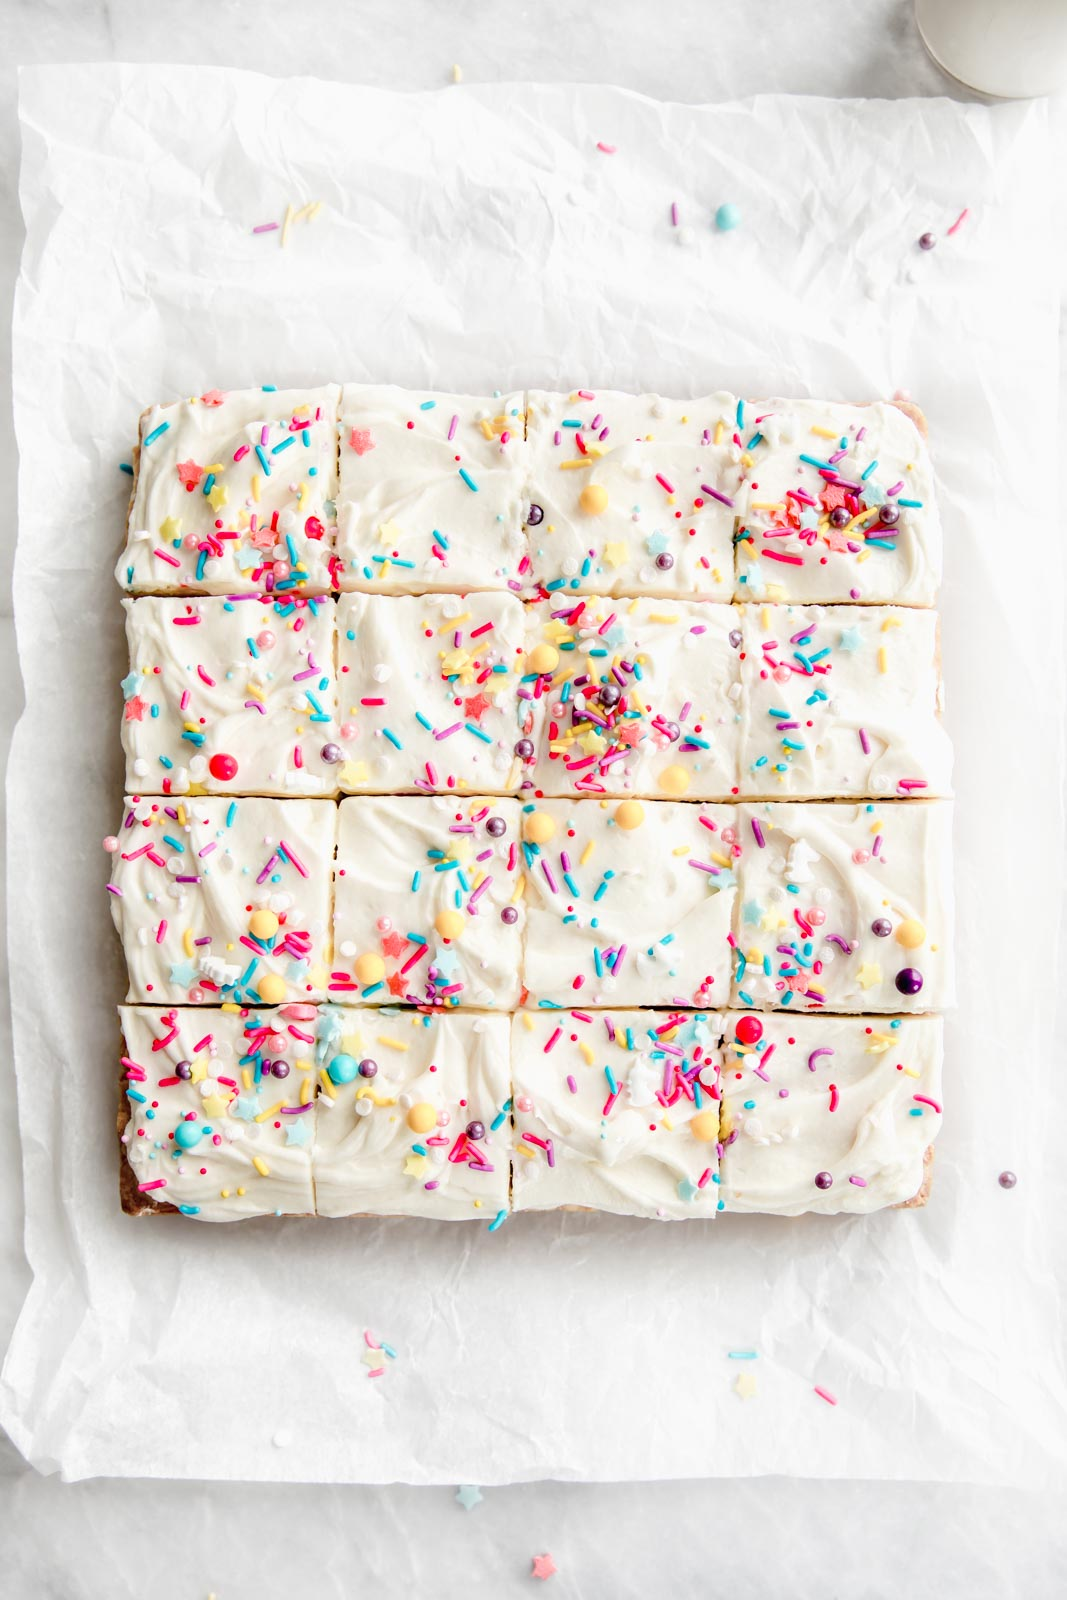 Buttery, chewy sugar cookie bars topped wtih a dreamy cream cheese frosting are the perfect easy dessert. Top this sweet treat with fun sprinkles and enjoy!